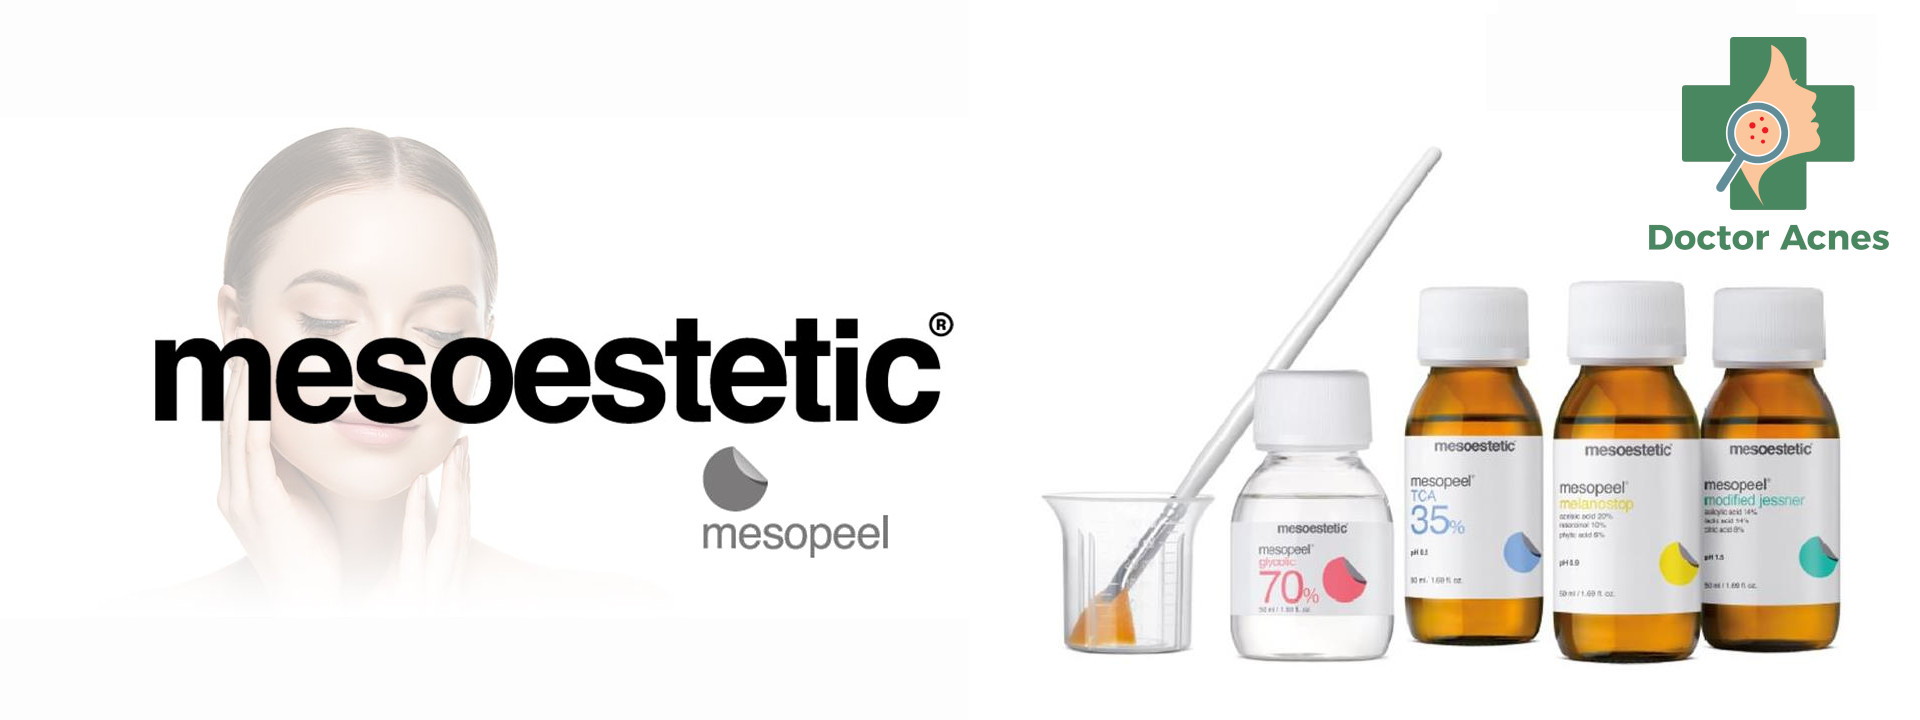 Peel da mesoestetic